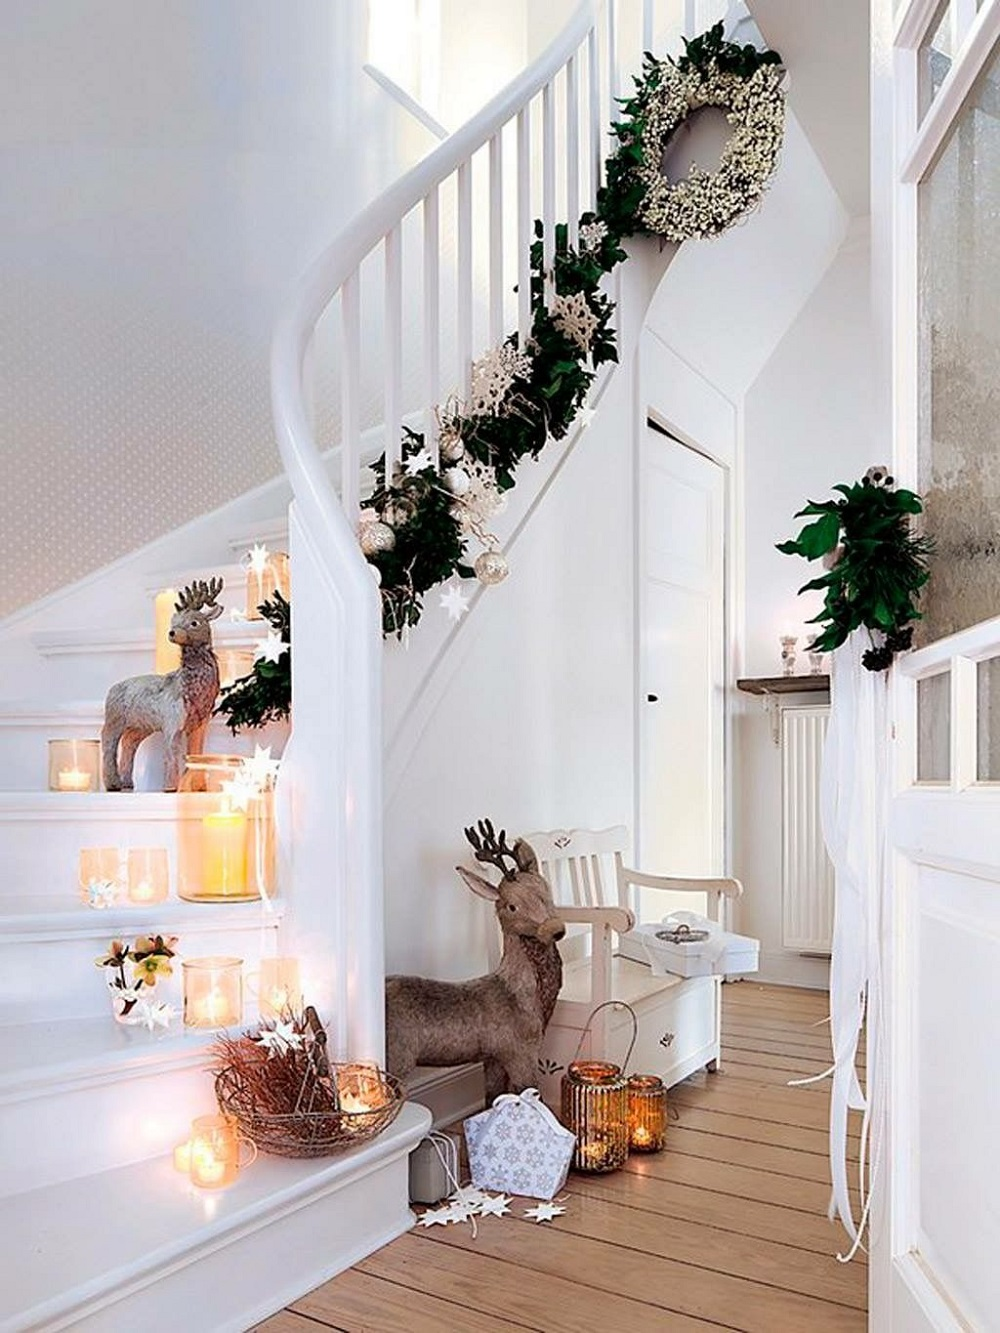 t3 Great decoration ideas for Christmas stairs that you should definitely try